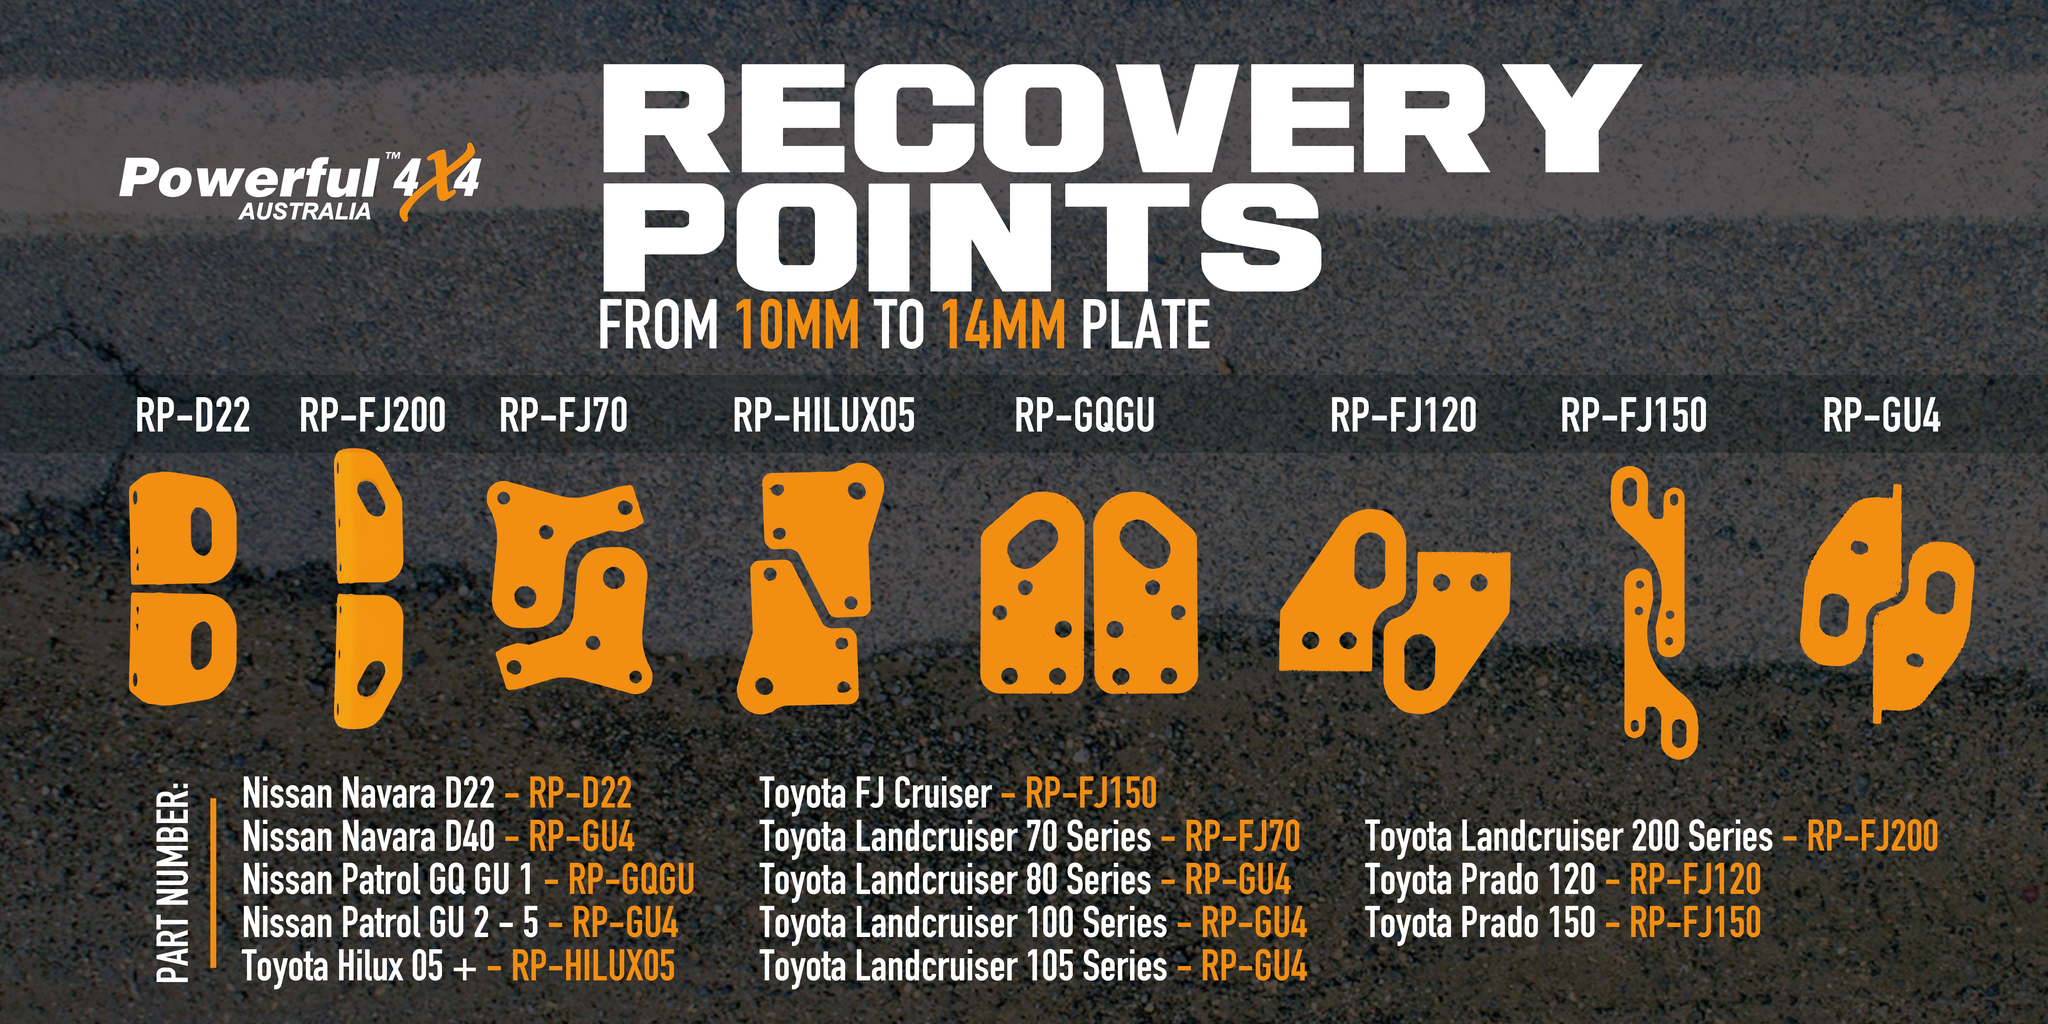 Rated Recovery Points